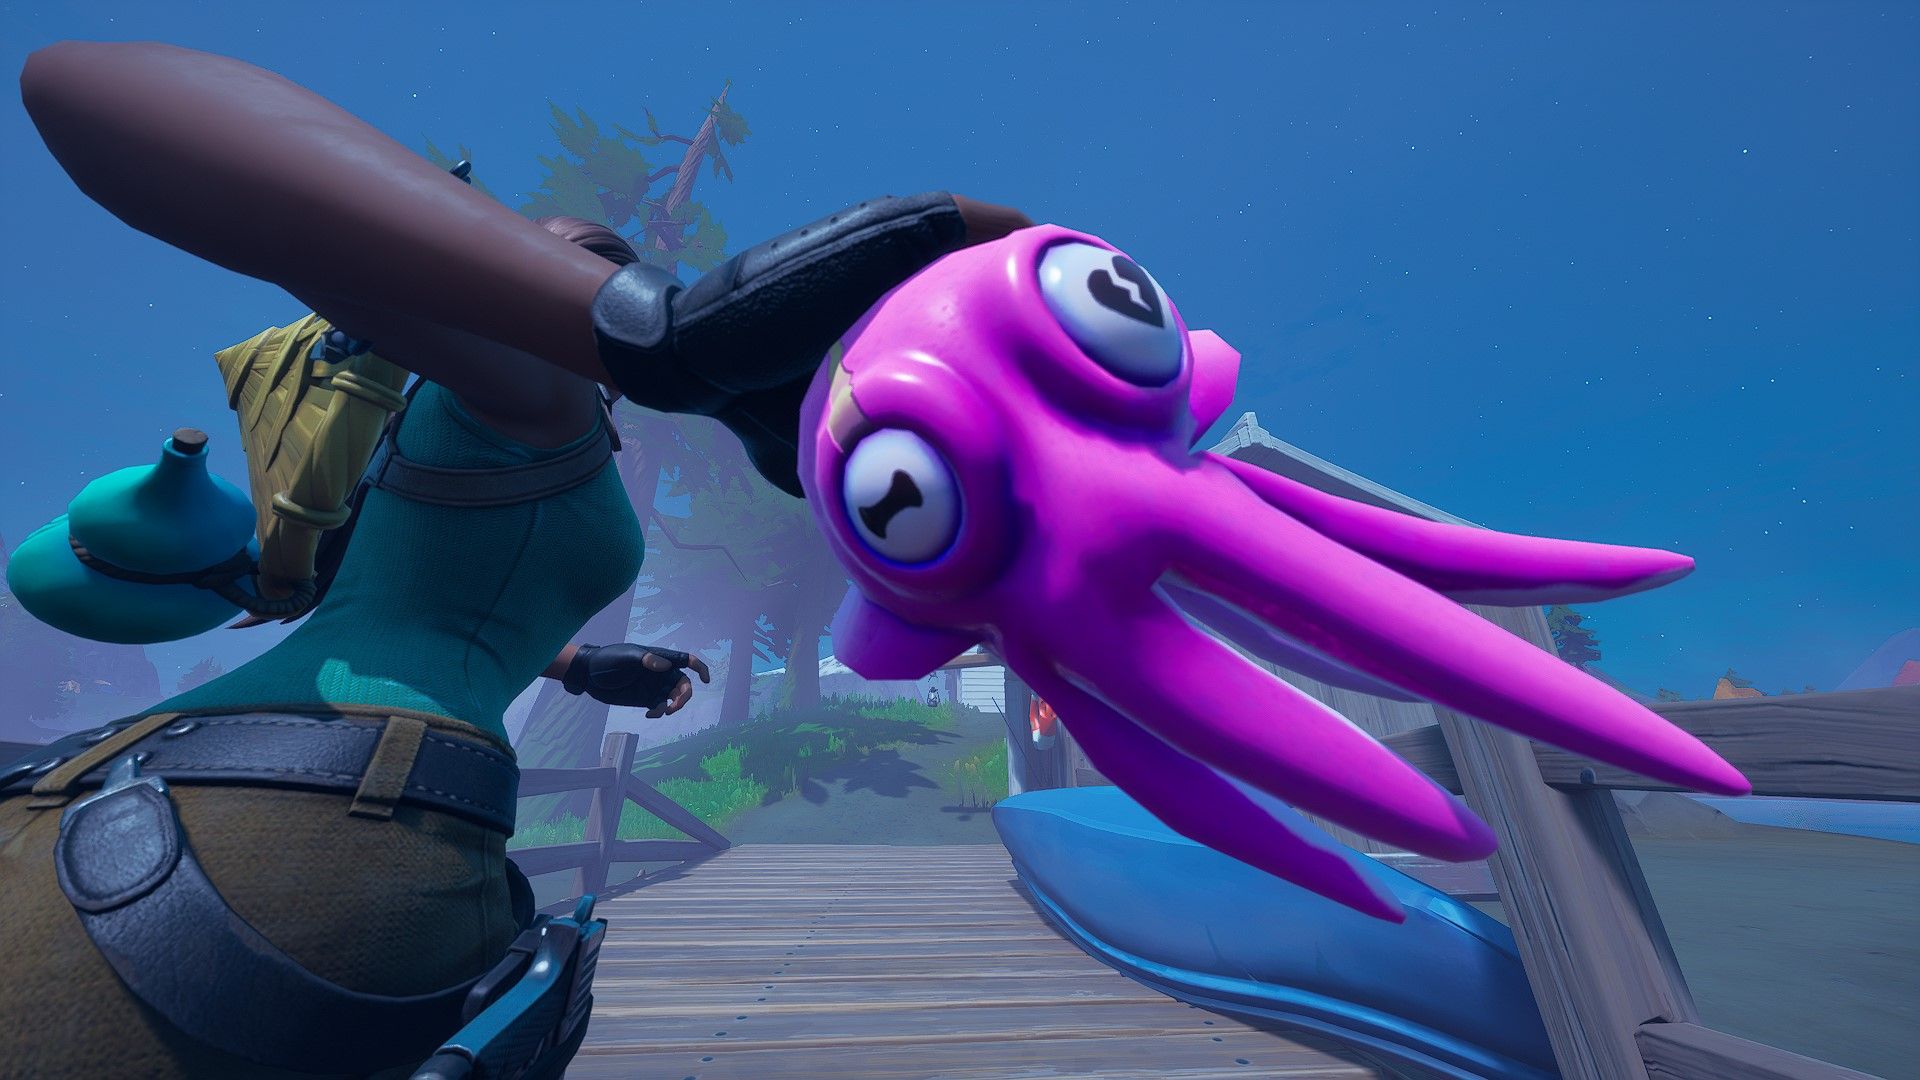 Where to find Fortnite Cuddle Fish and how to use them